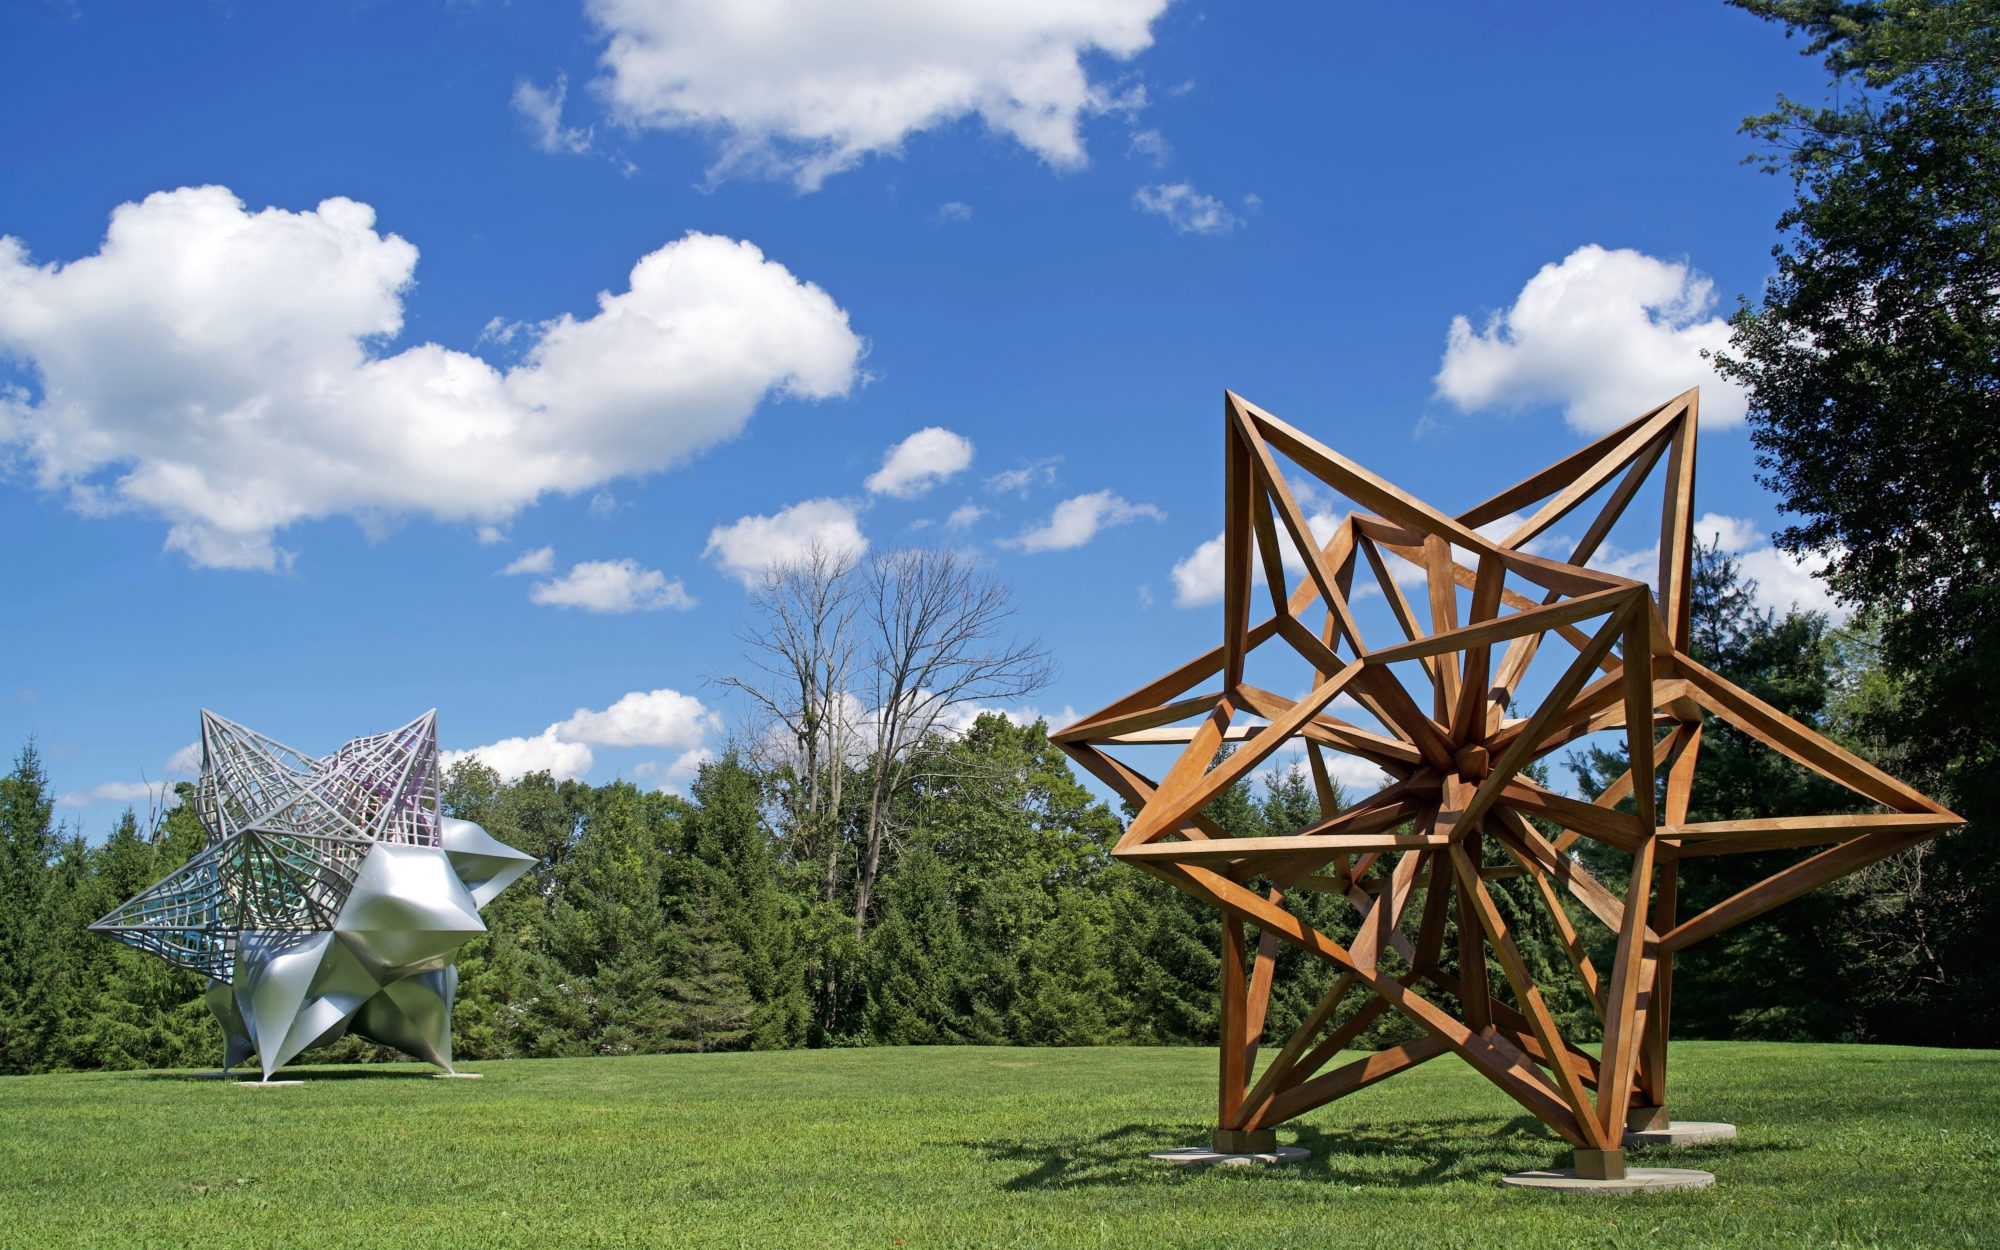 Two large scale star shaped sculptures installed on the grass in the Museum's Sculpture Garden.